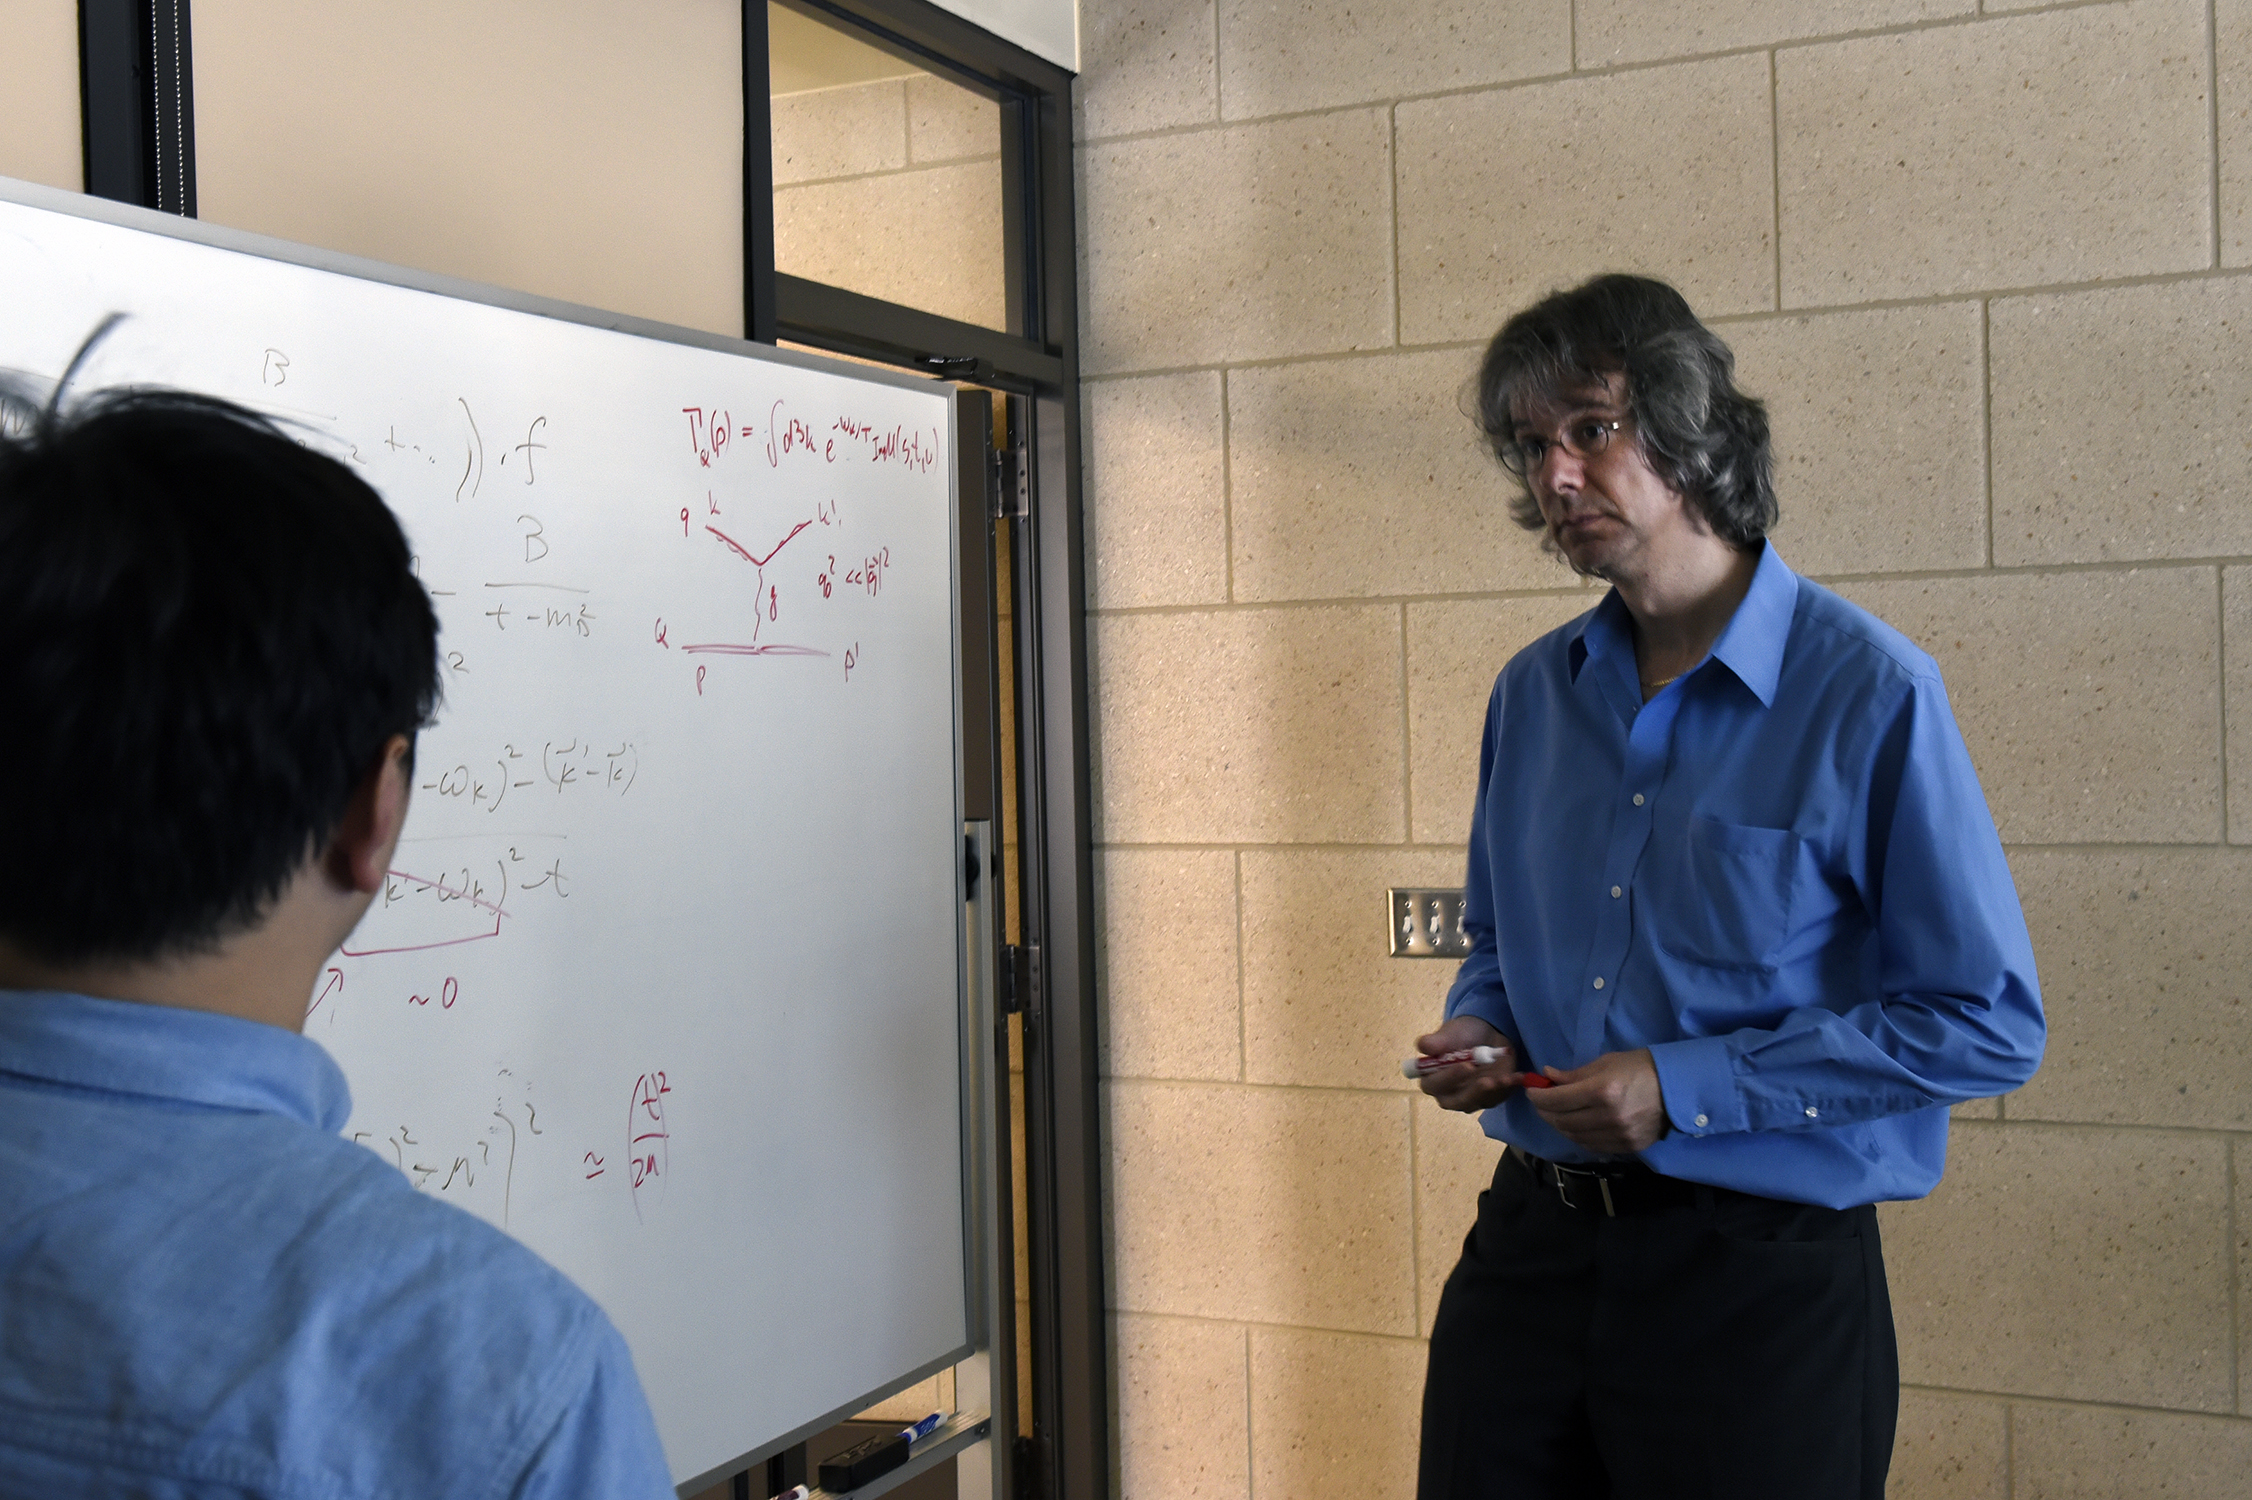 Texas A&M physicist Ralf Rapp discusses a research project with a member of his group